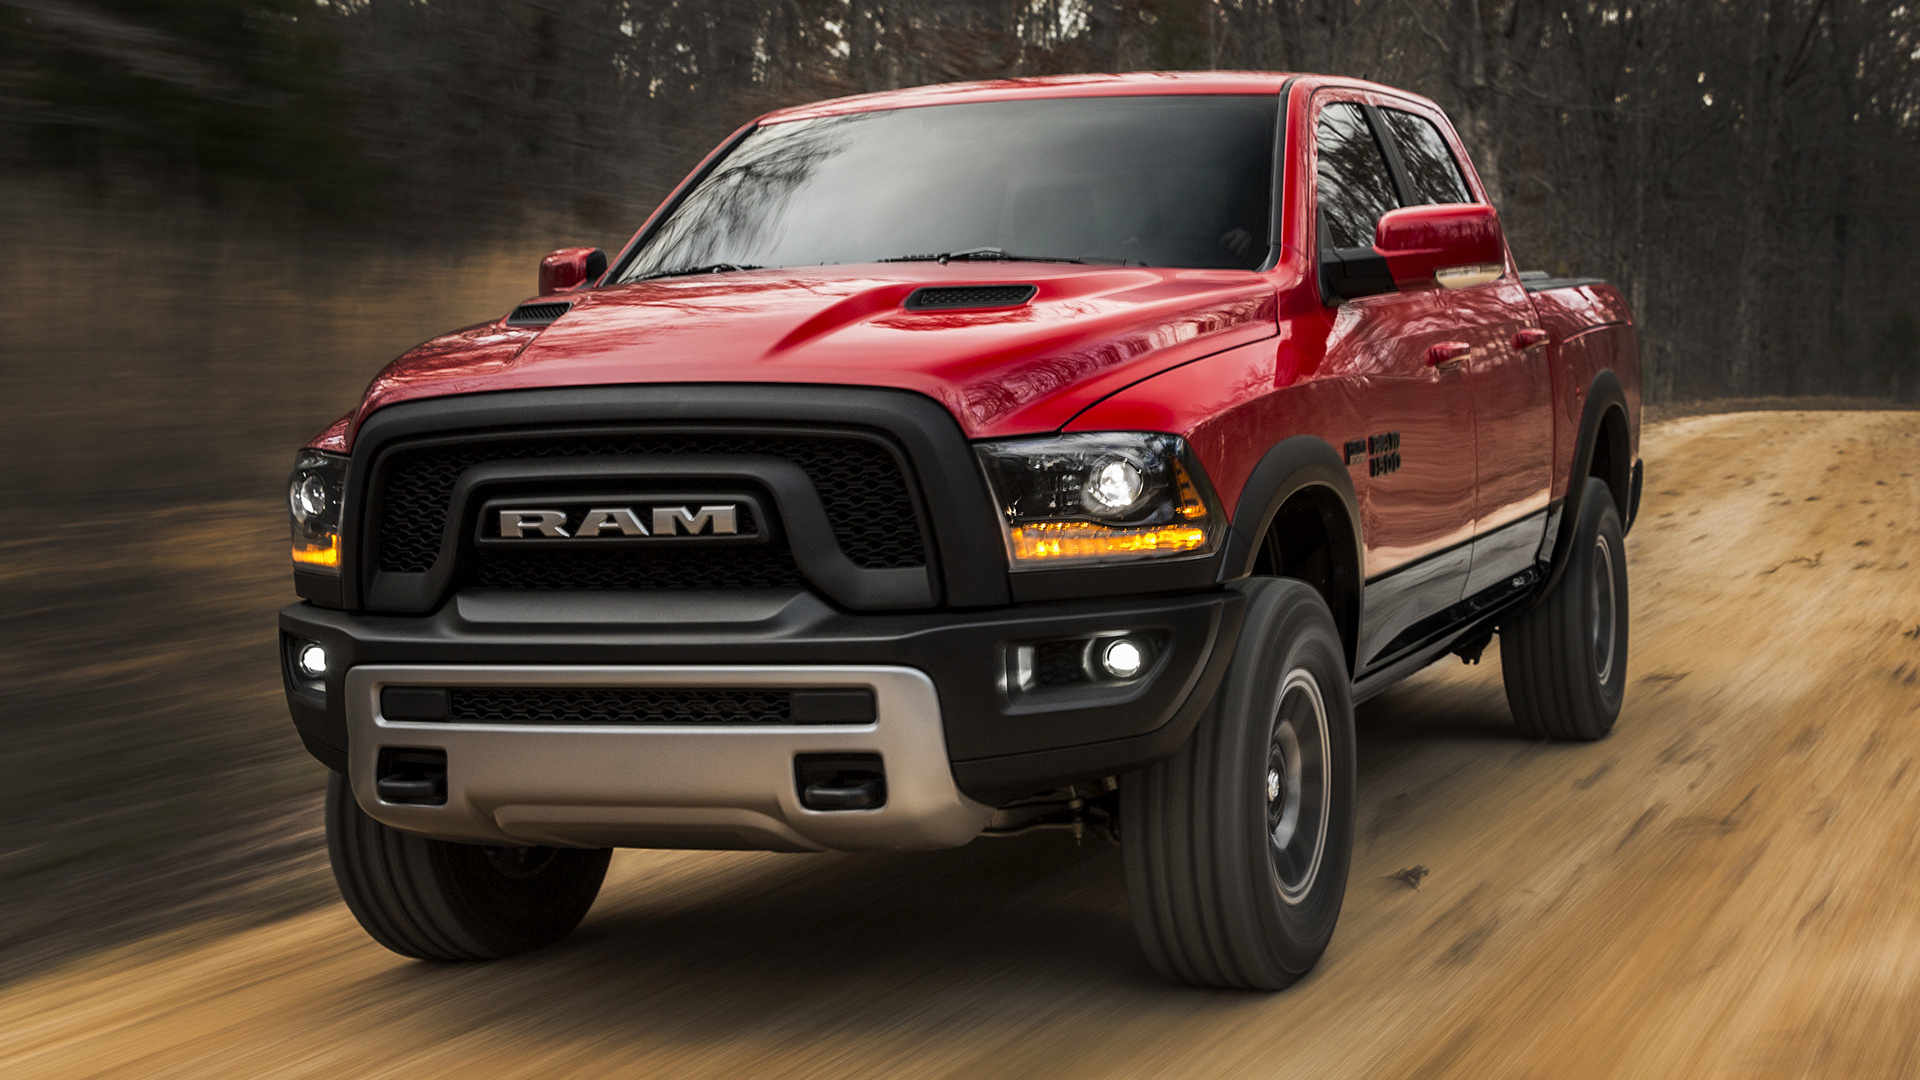 Ram 1500 Rebel >> 2015 Ram 1500 Rebel Crew Cab - Wallpapers and HD Images | Car Pixel